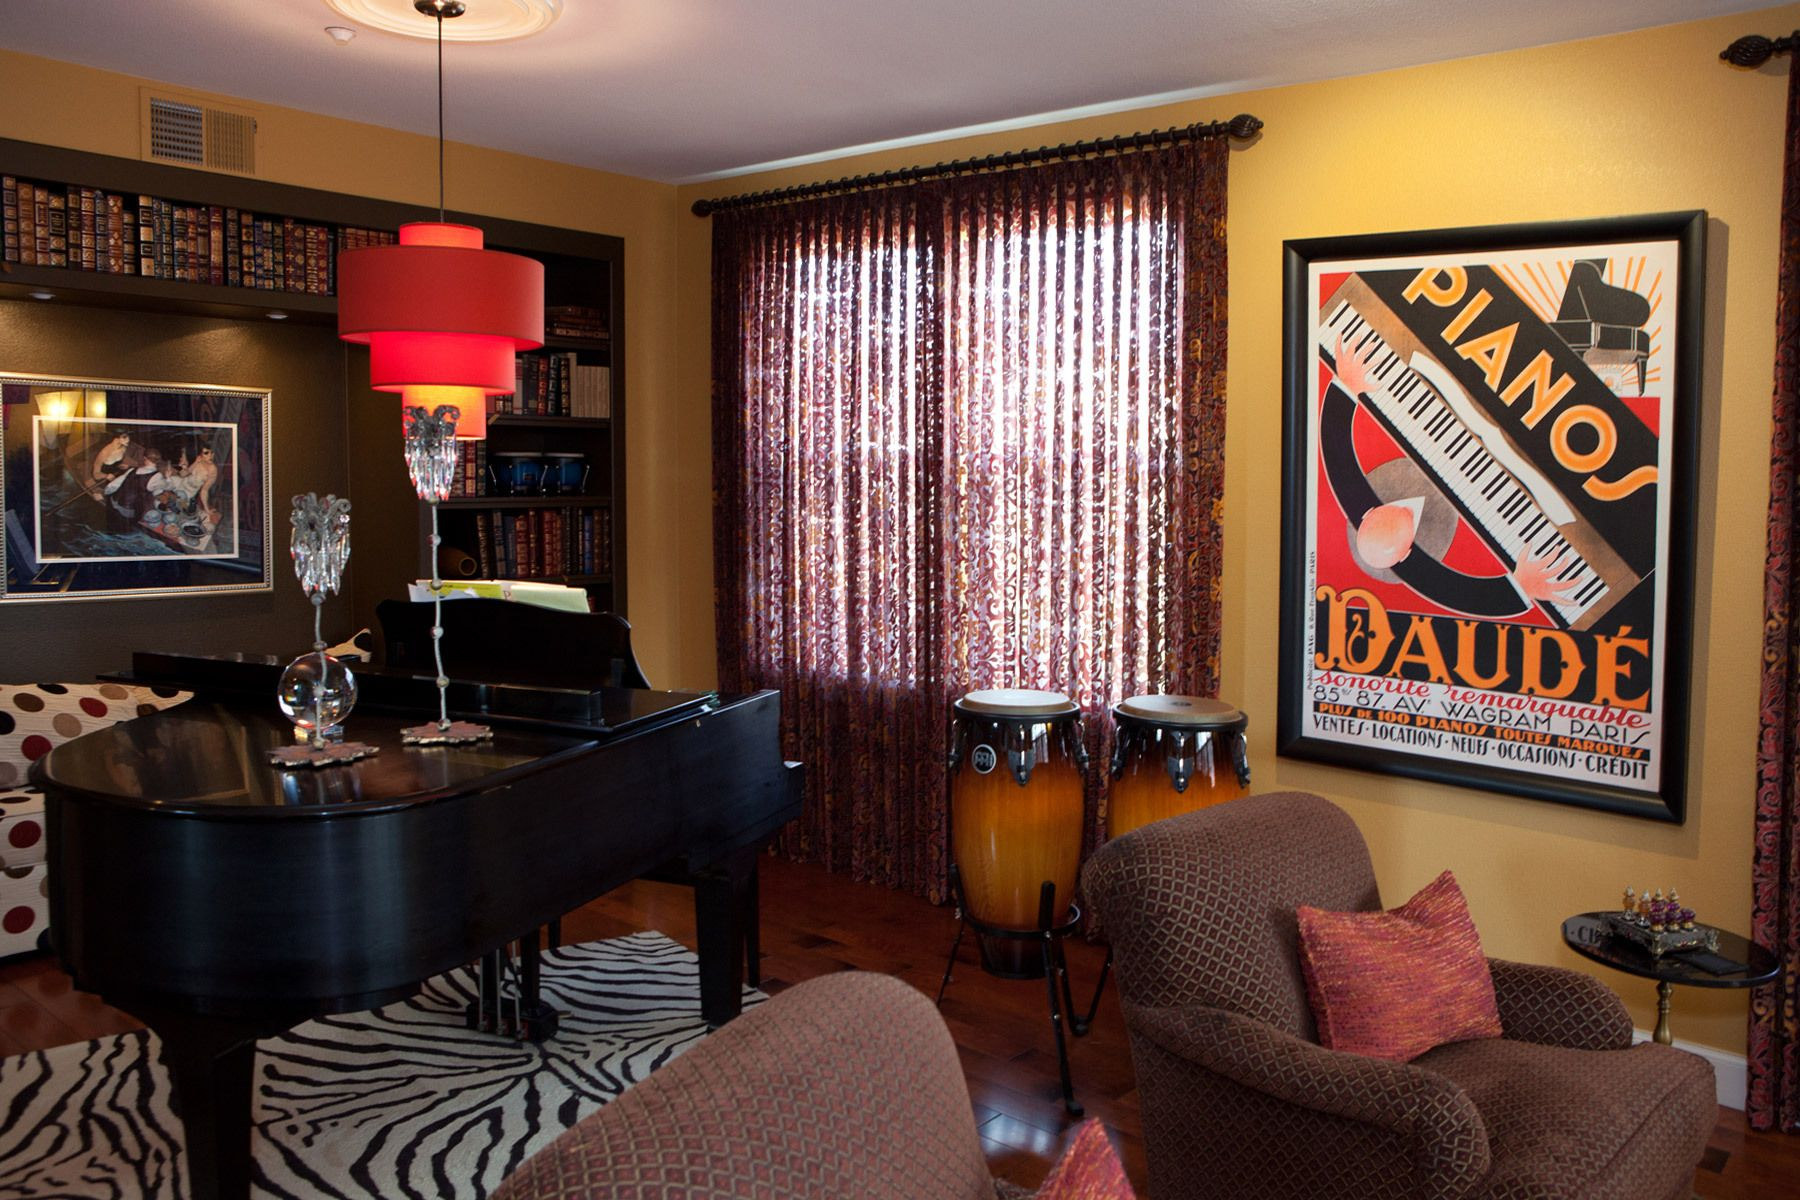 Music Themed Room Ideas Living Room Paint Colors 1800x1200 Musical Themed Living